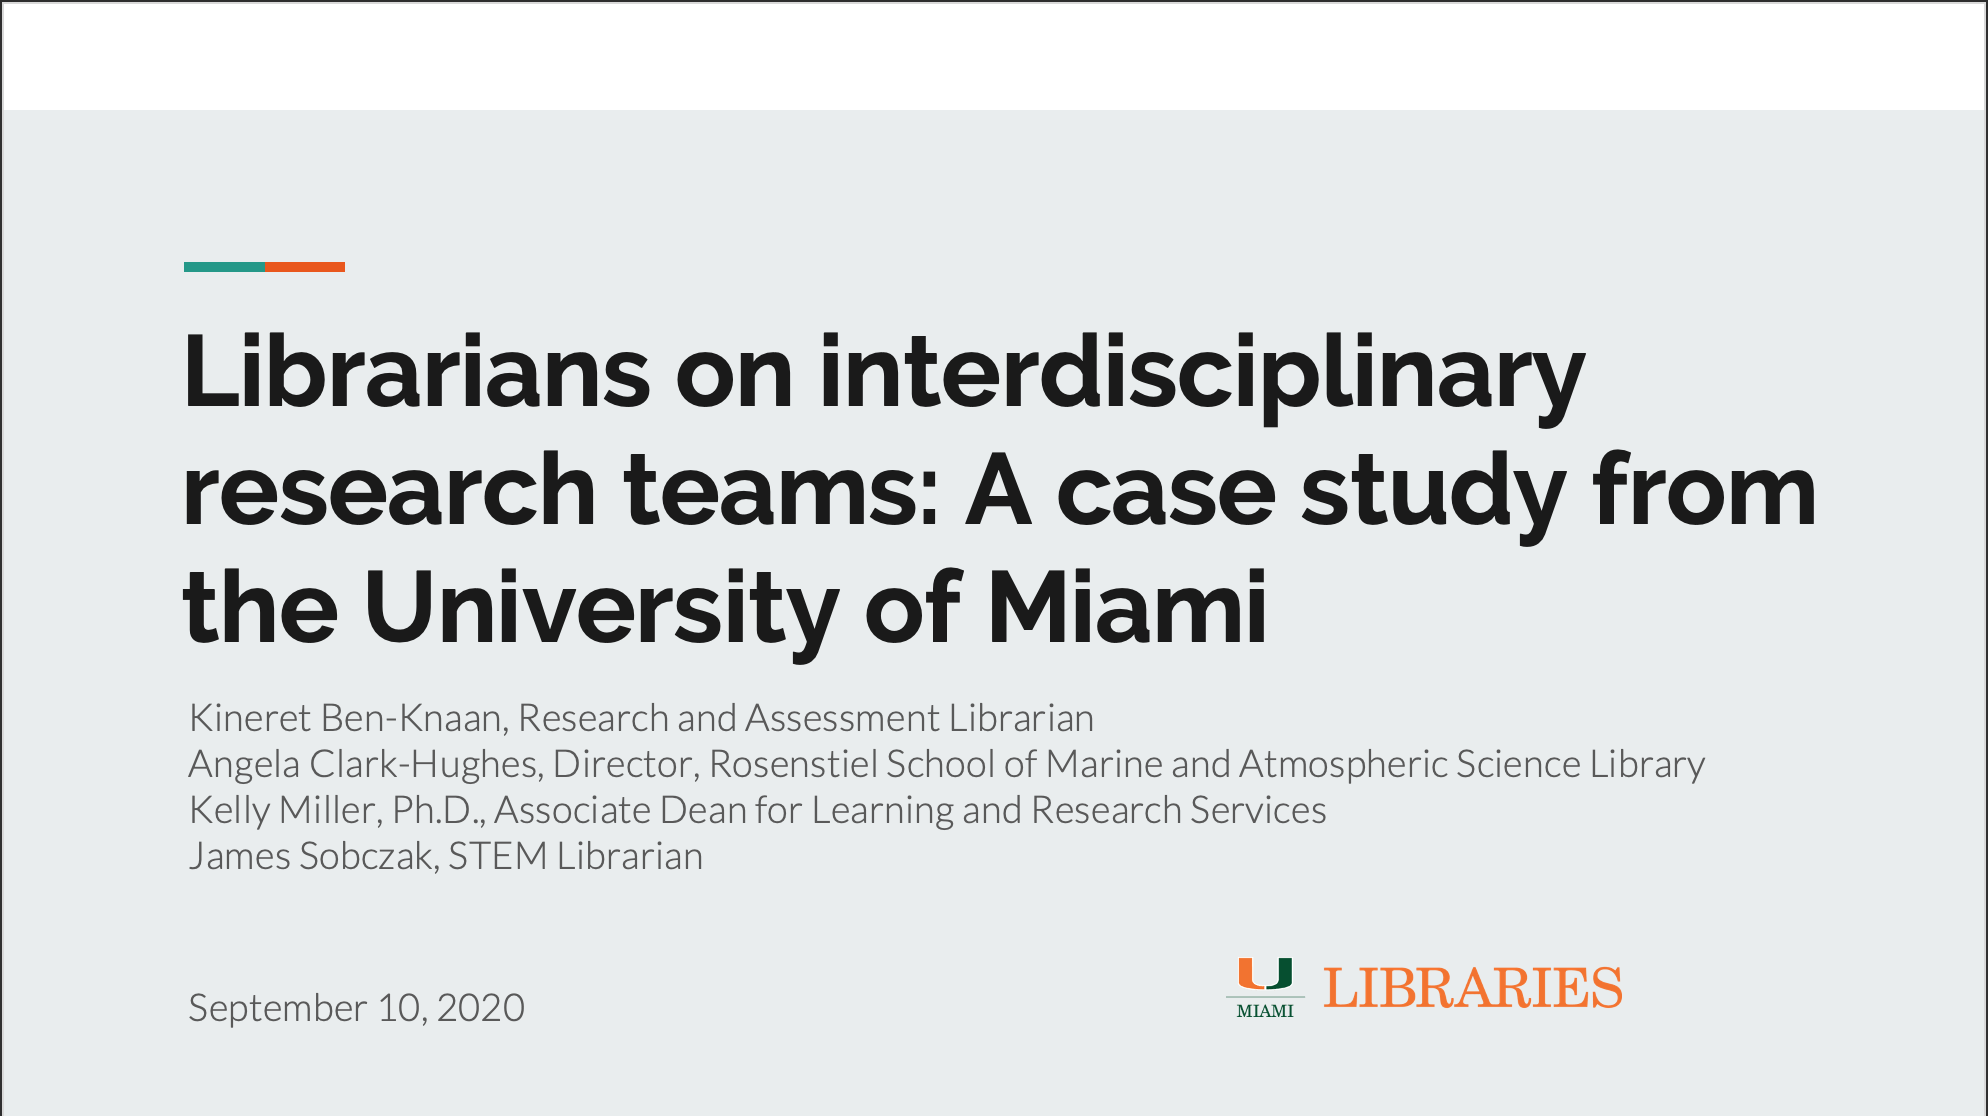 Librarians on interdisciplinary research teams—a case study from the University of Miami